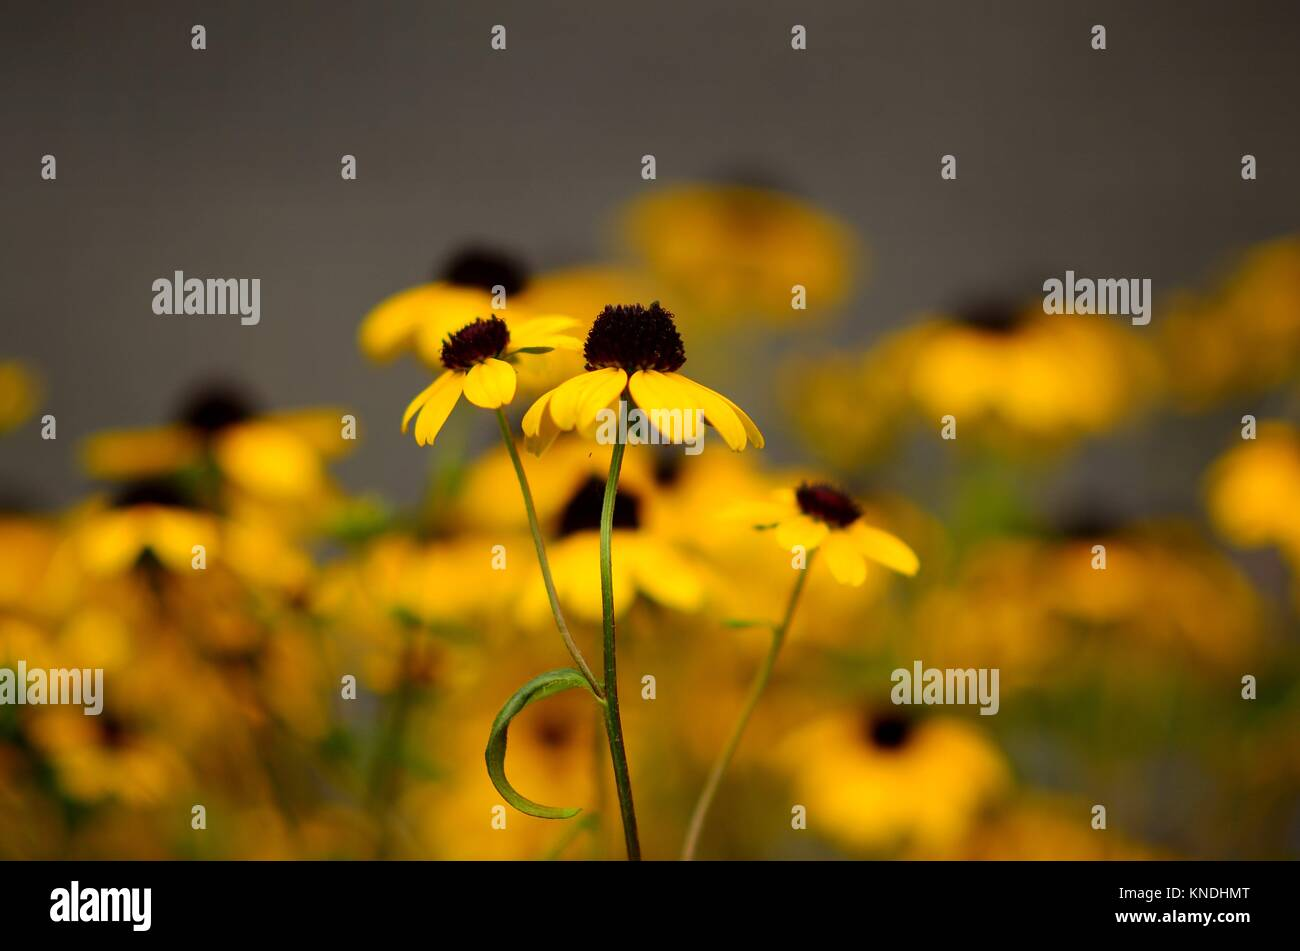 Black-eyed susans centered in soft-focus, Pennsylvania, USA. - Stock Image